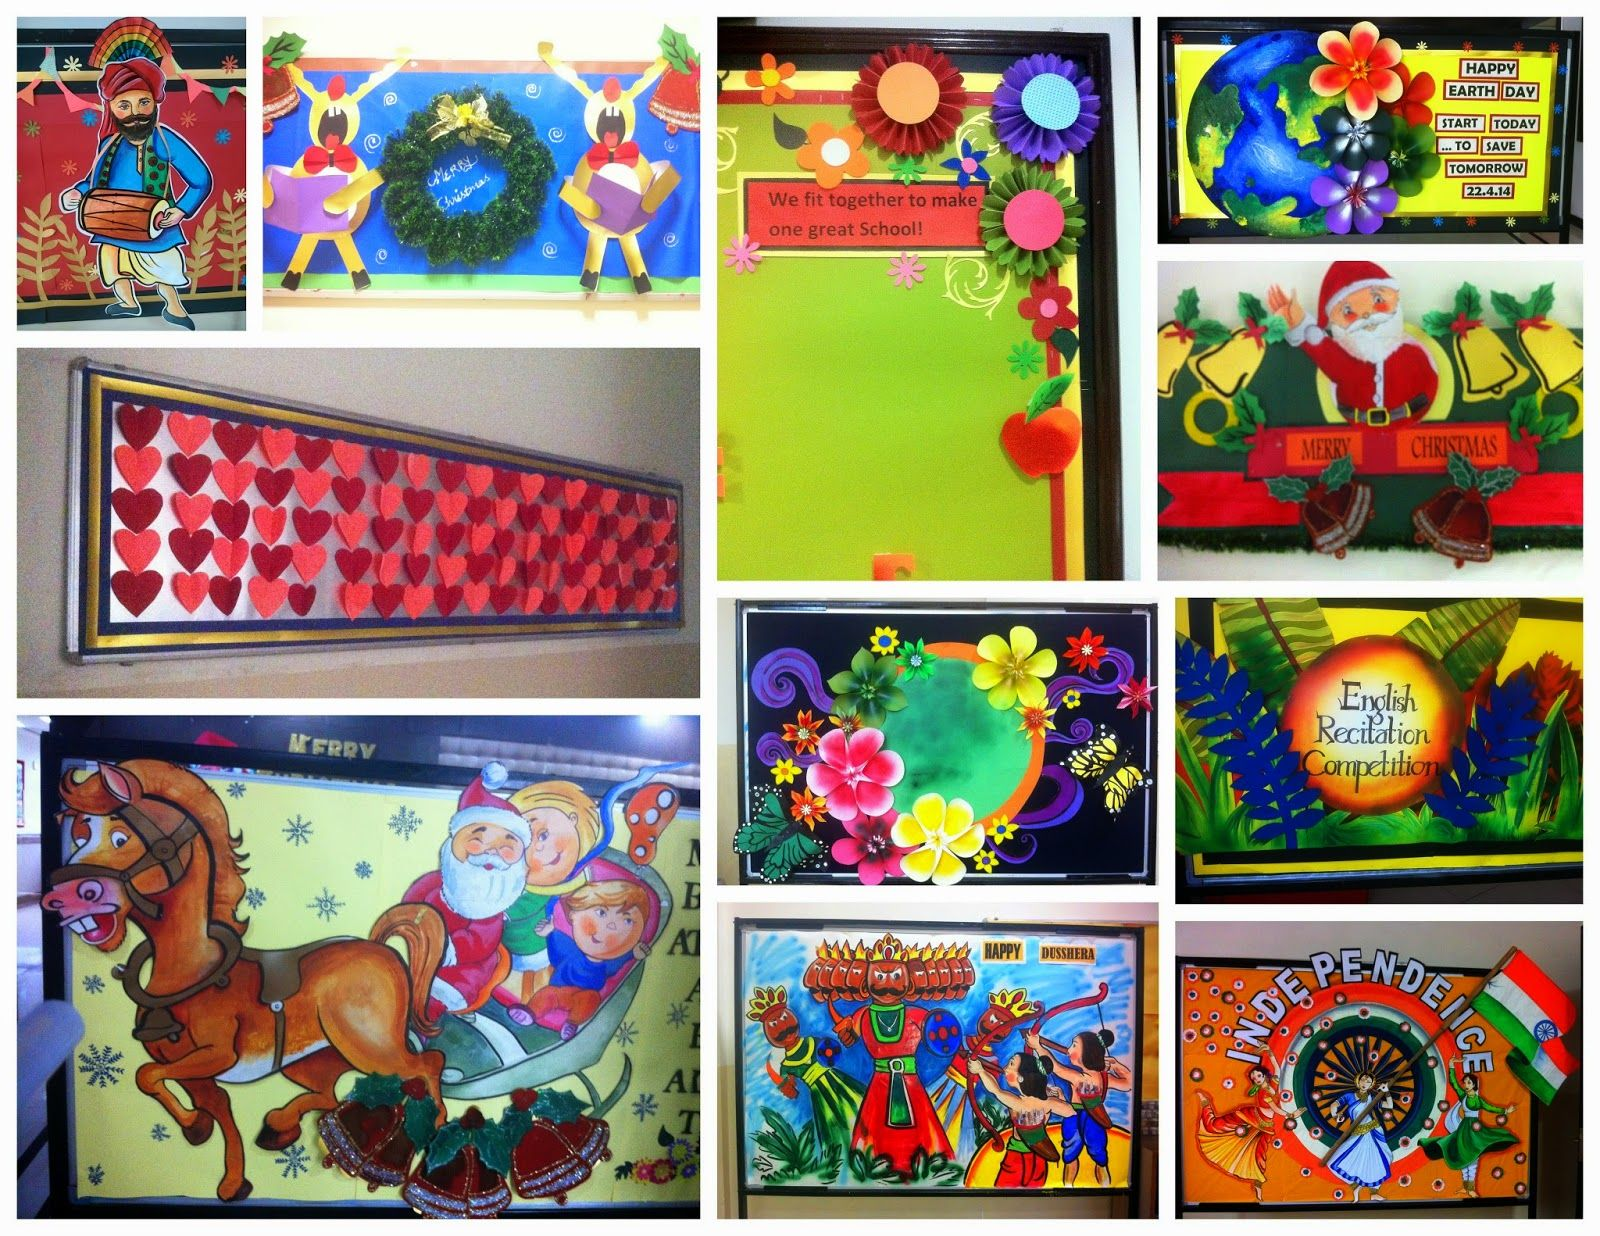 A Blog About Art Craft Ideas For Kids And School Projects School Decorations Crafts Paper Crafts